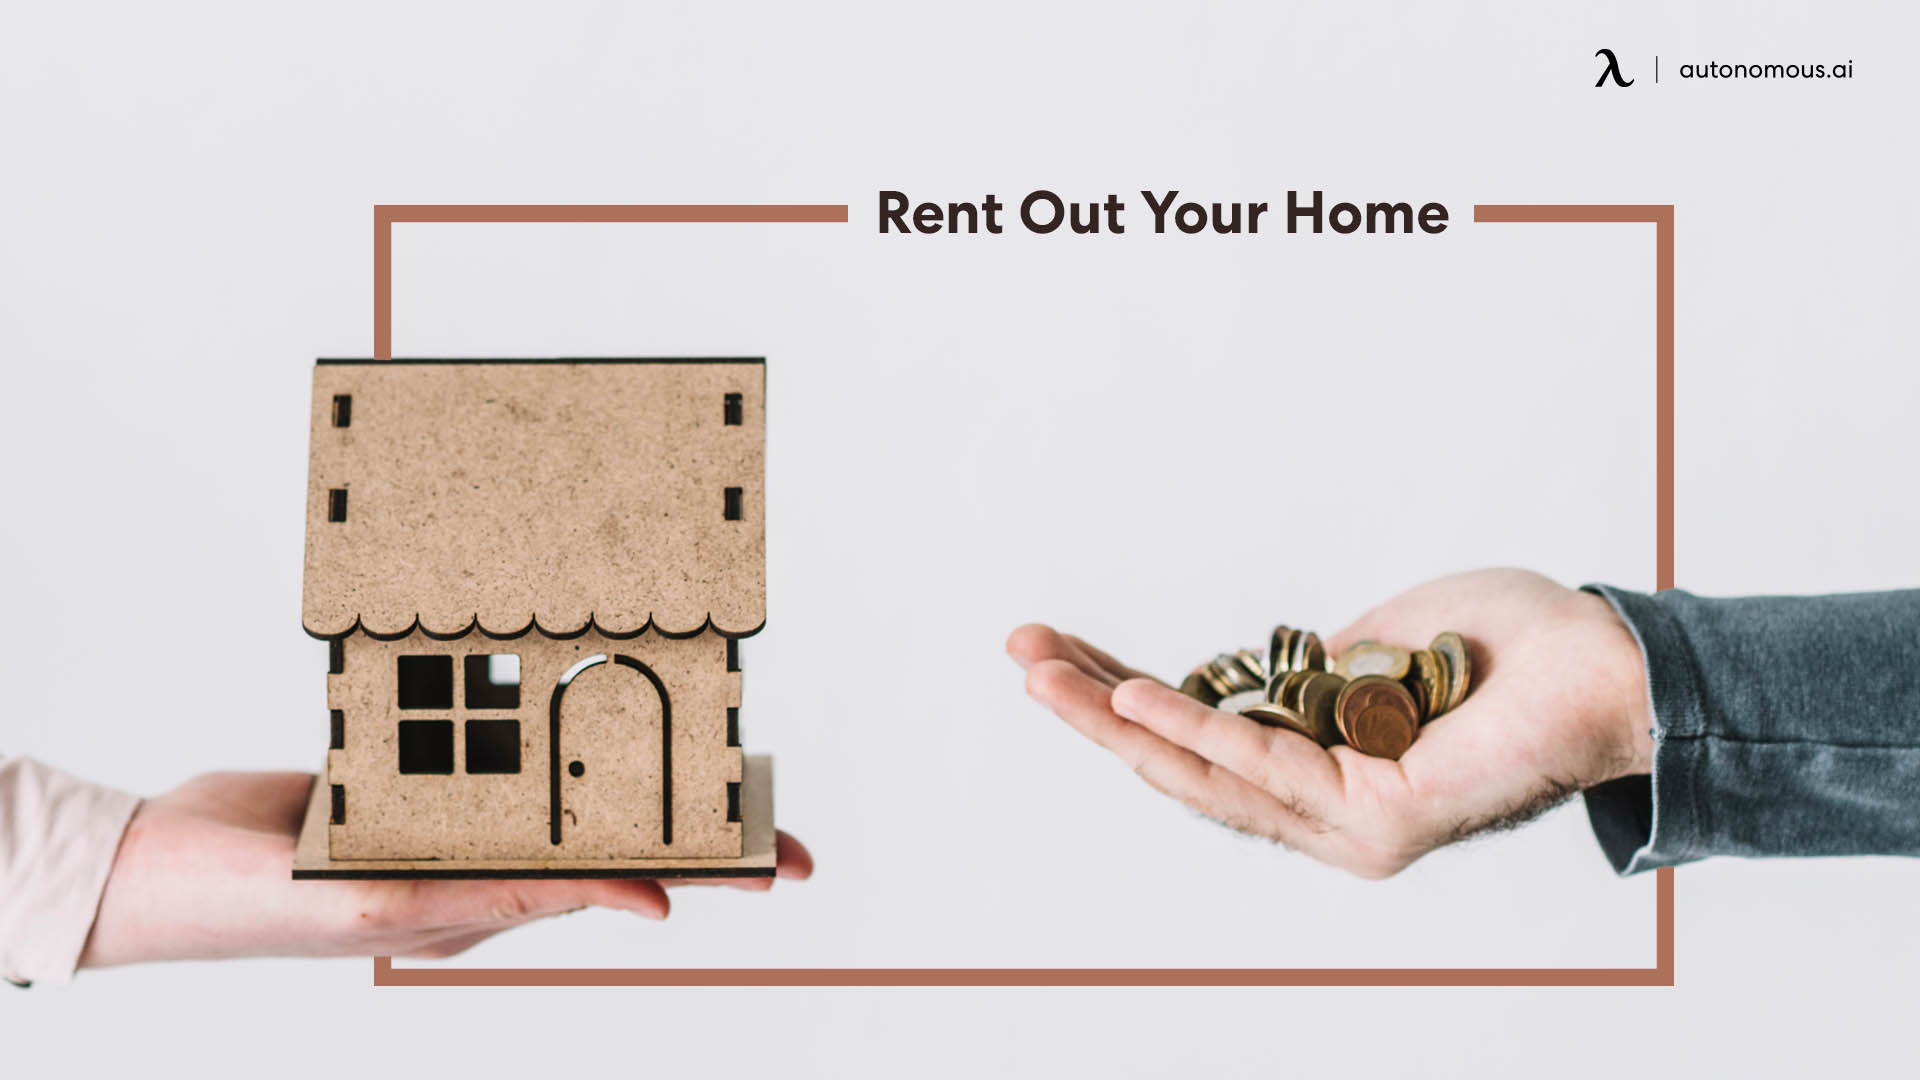 Rent out space in your home